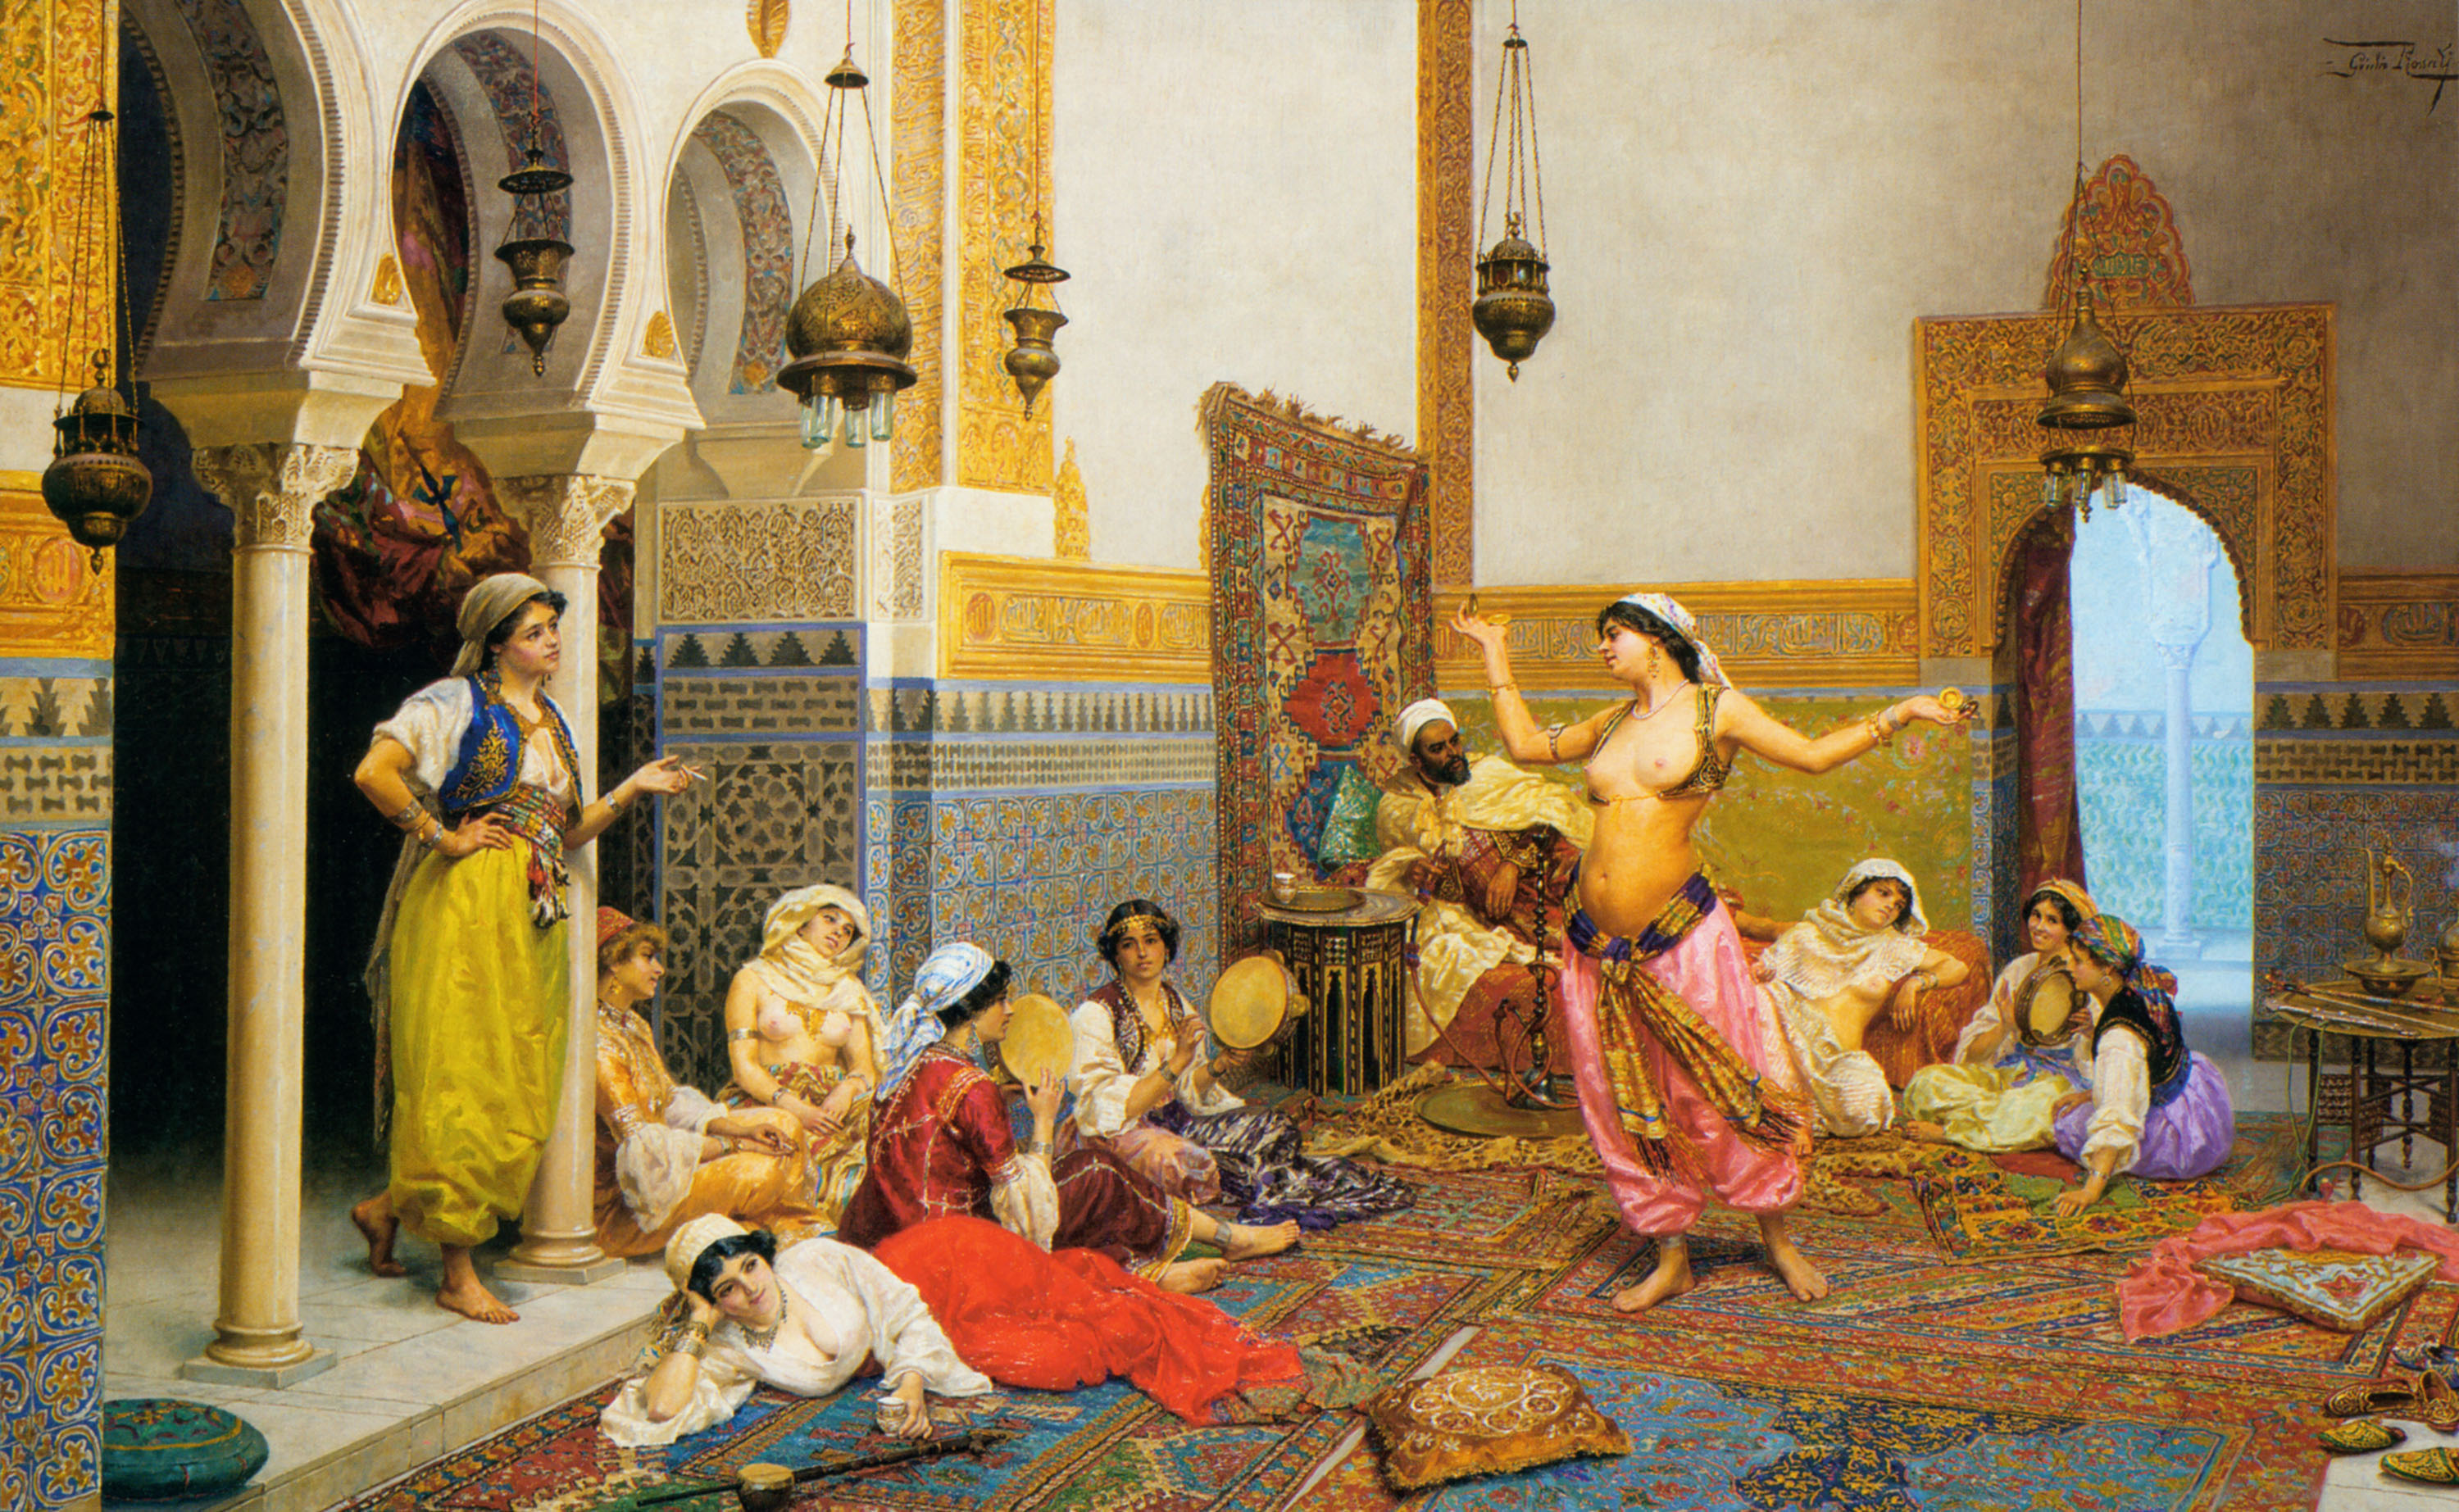 The harem dance, oil on canvas, by Giulio Rosati.